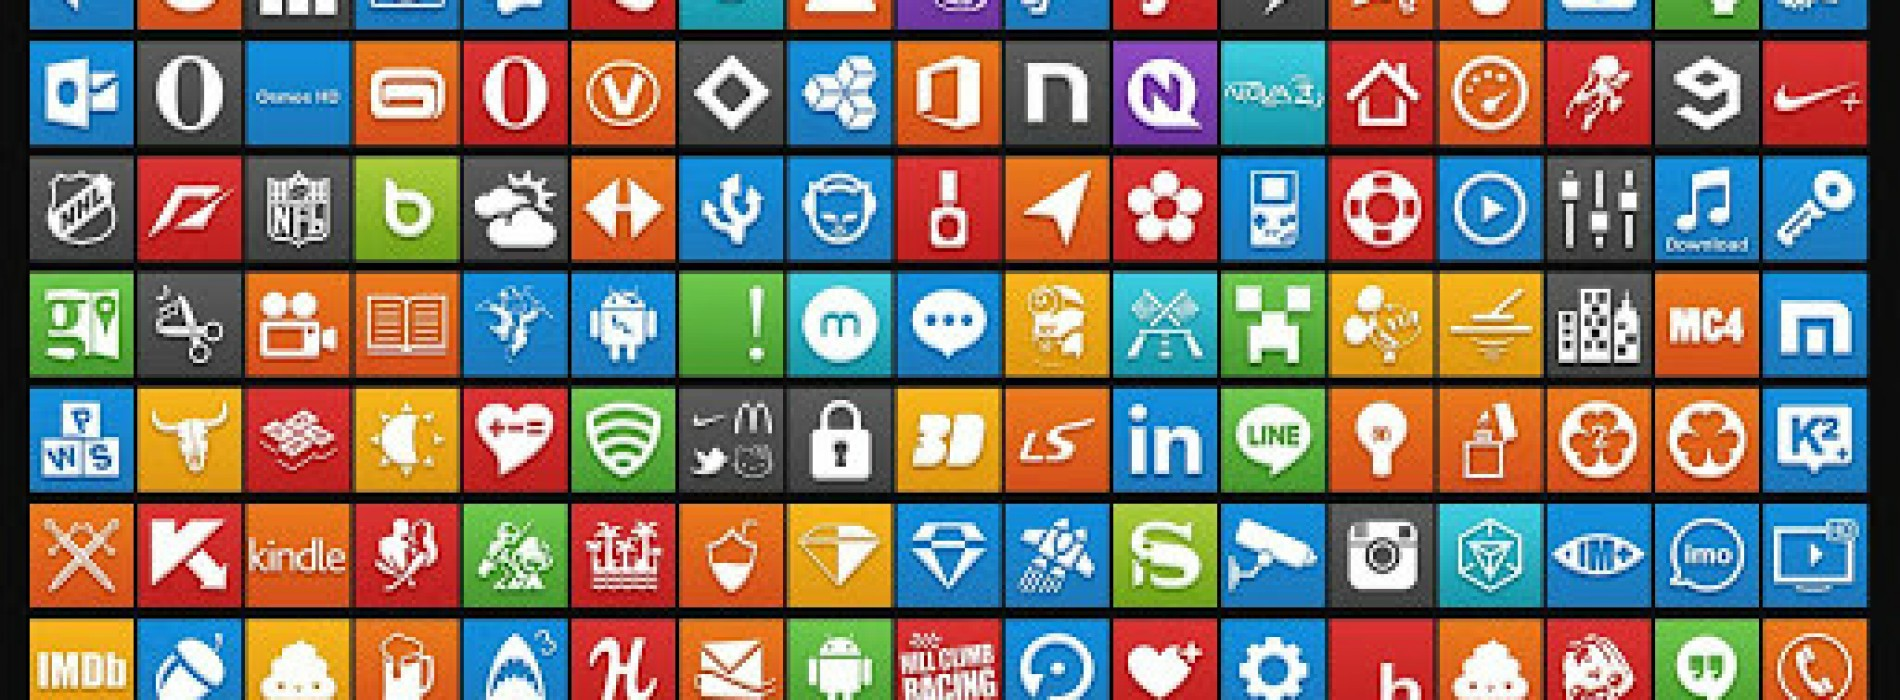 Ten of our favorite icon packs for Android (Volume 4)